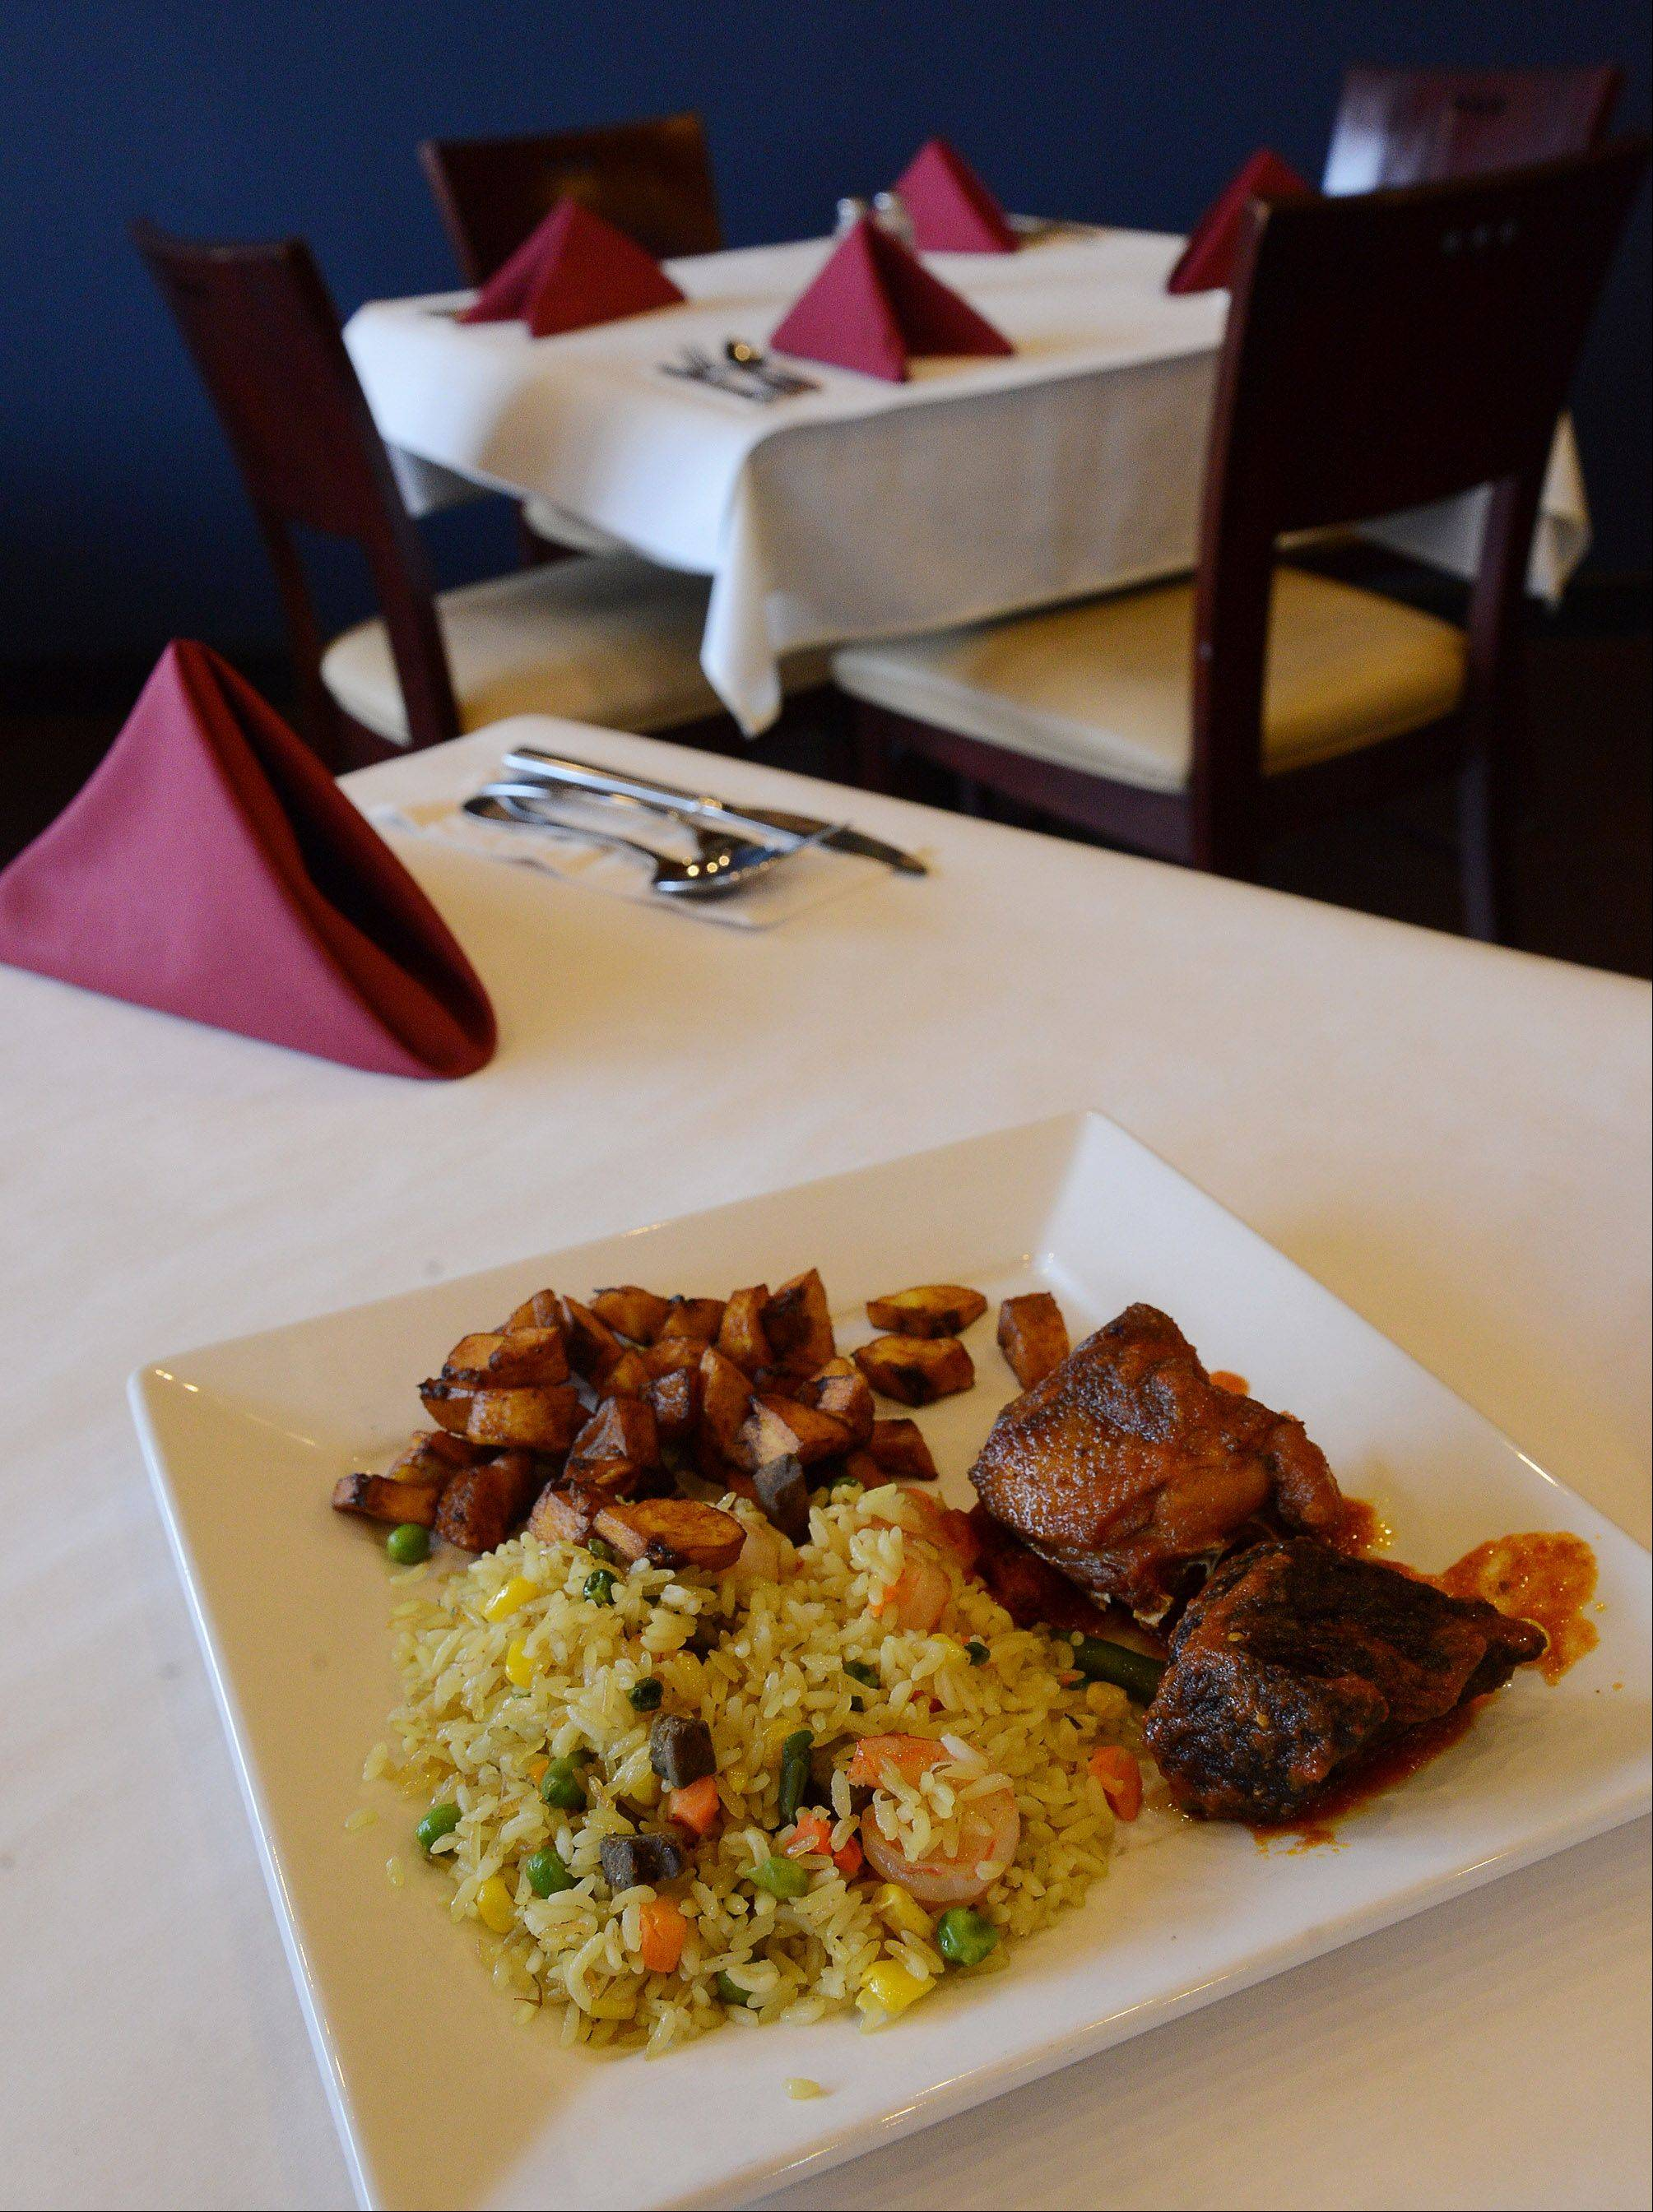 Fried rice with shrimp, beef liver and mixed vegetables, served with beef, chicken and plantains at Bisi African Restaurant in Schaumburg.